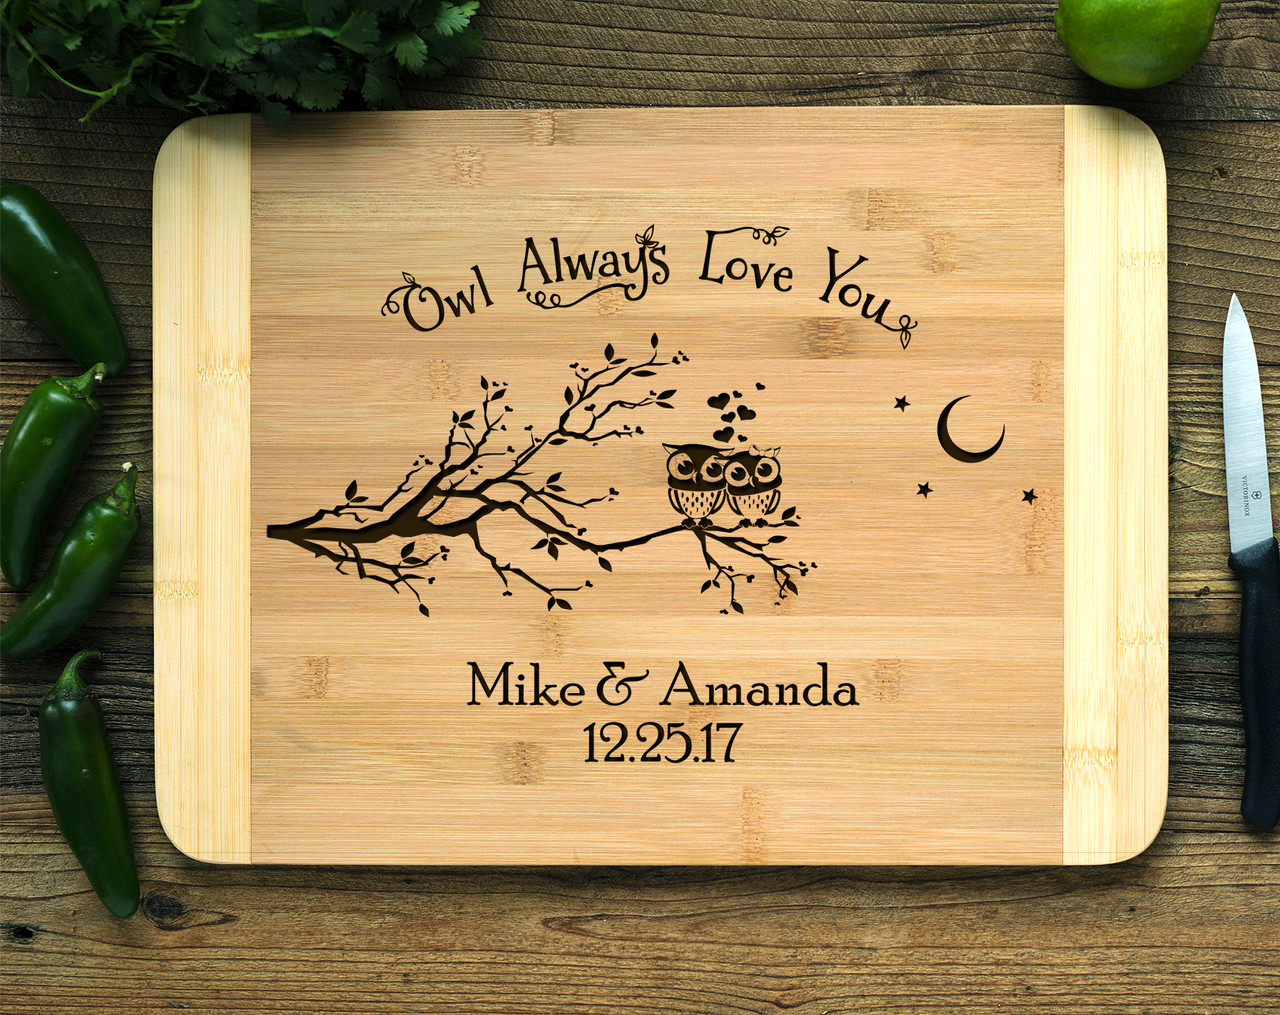 Owl Love you Personalized Cutting Board HDS